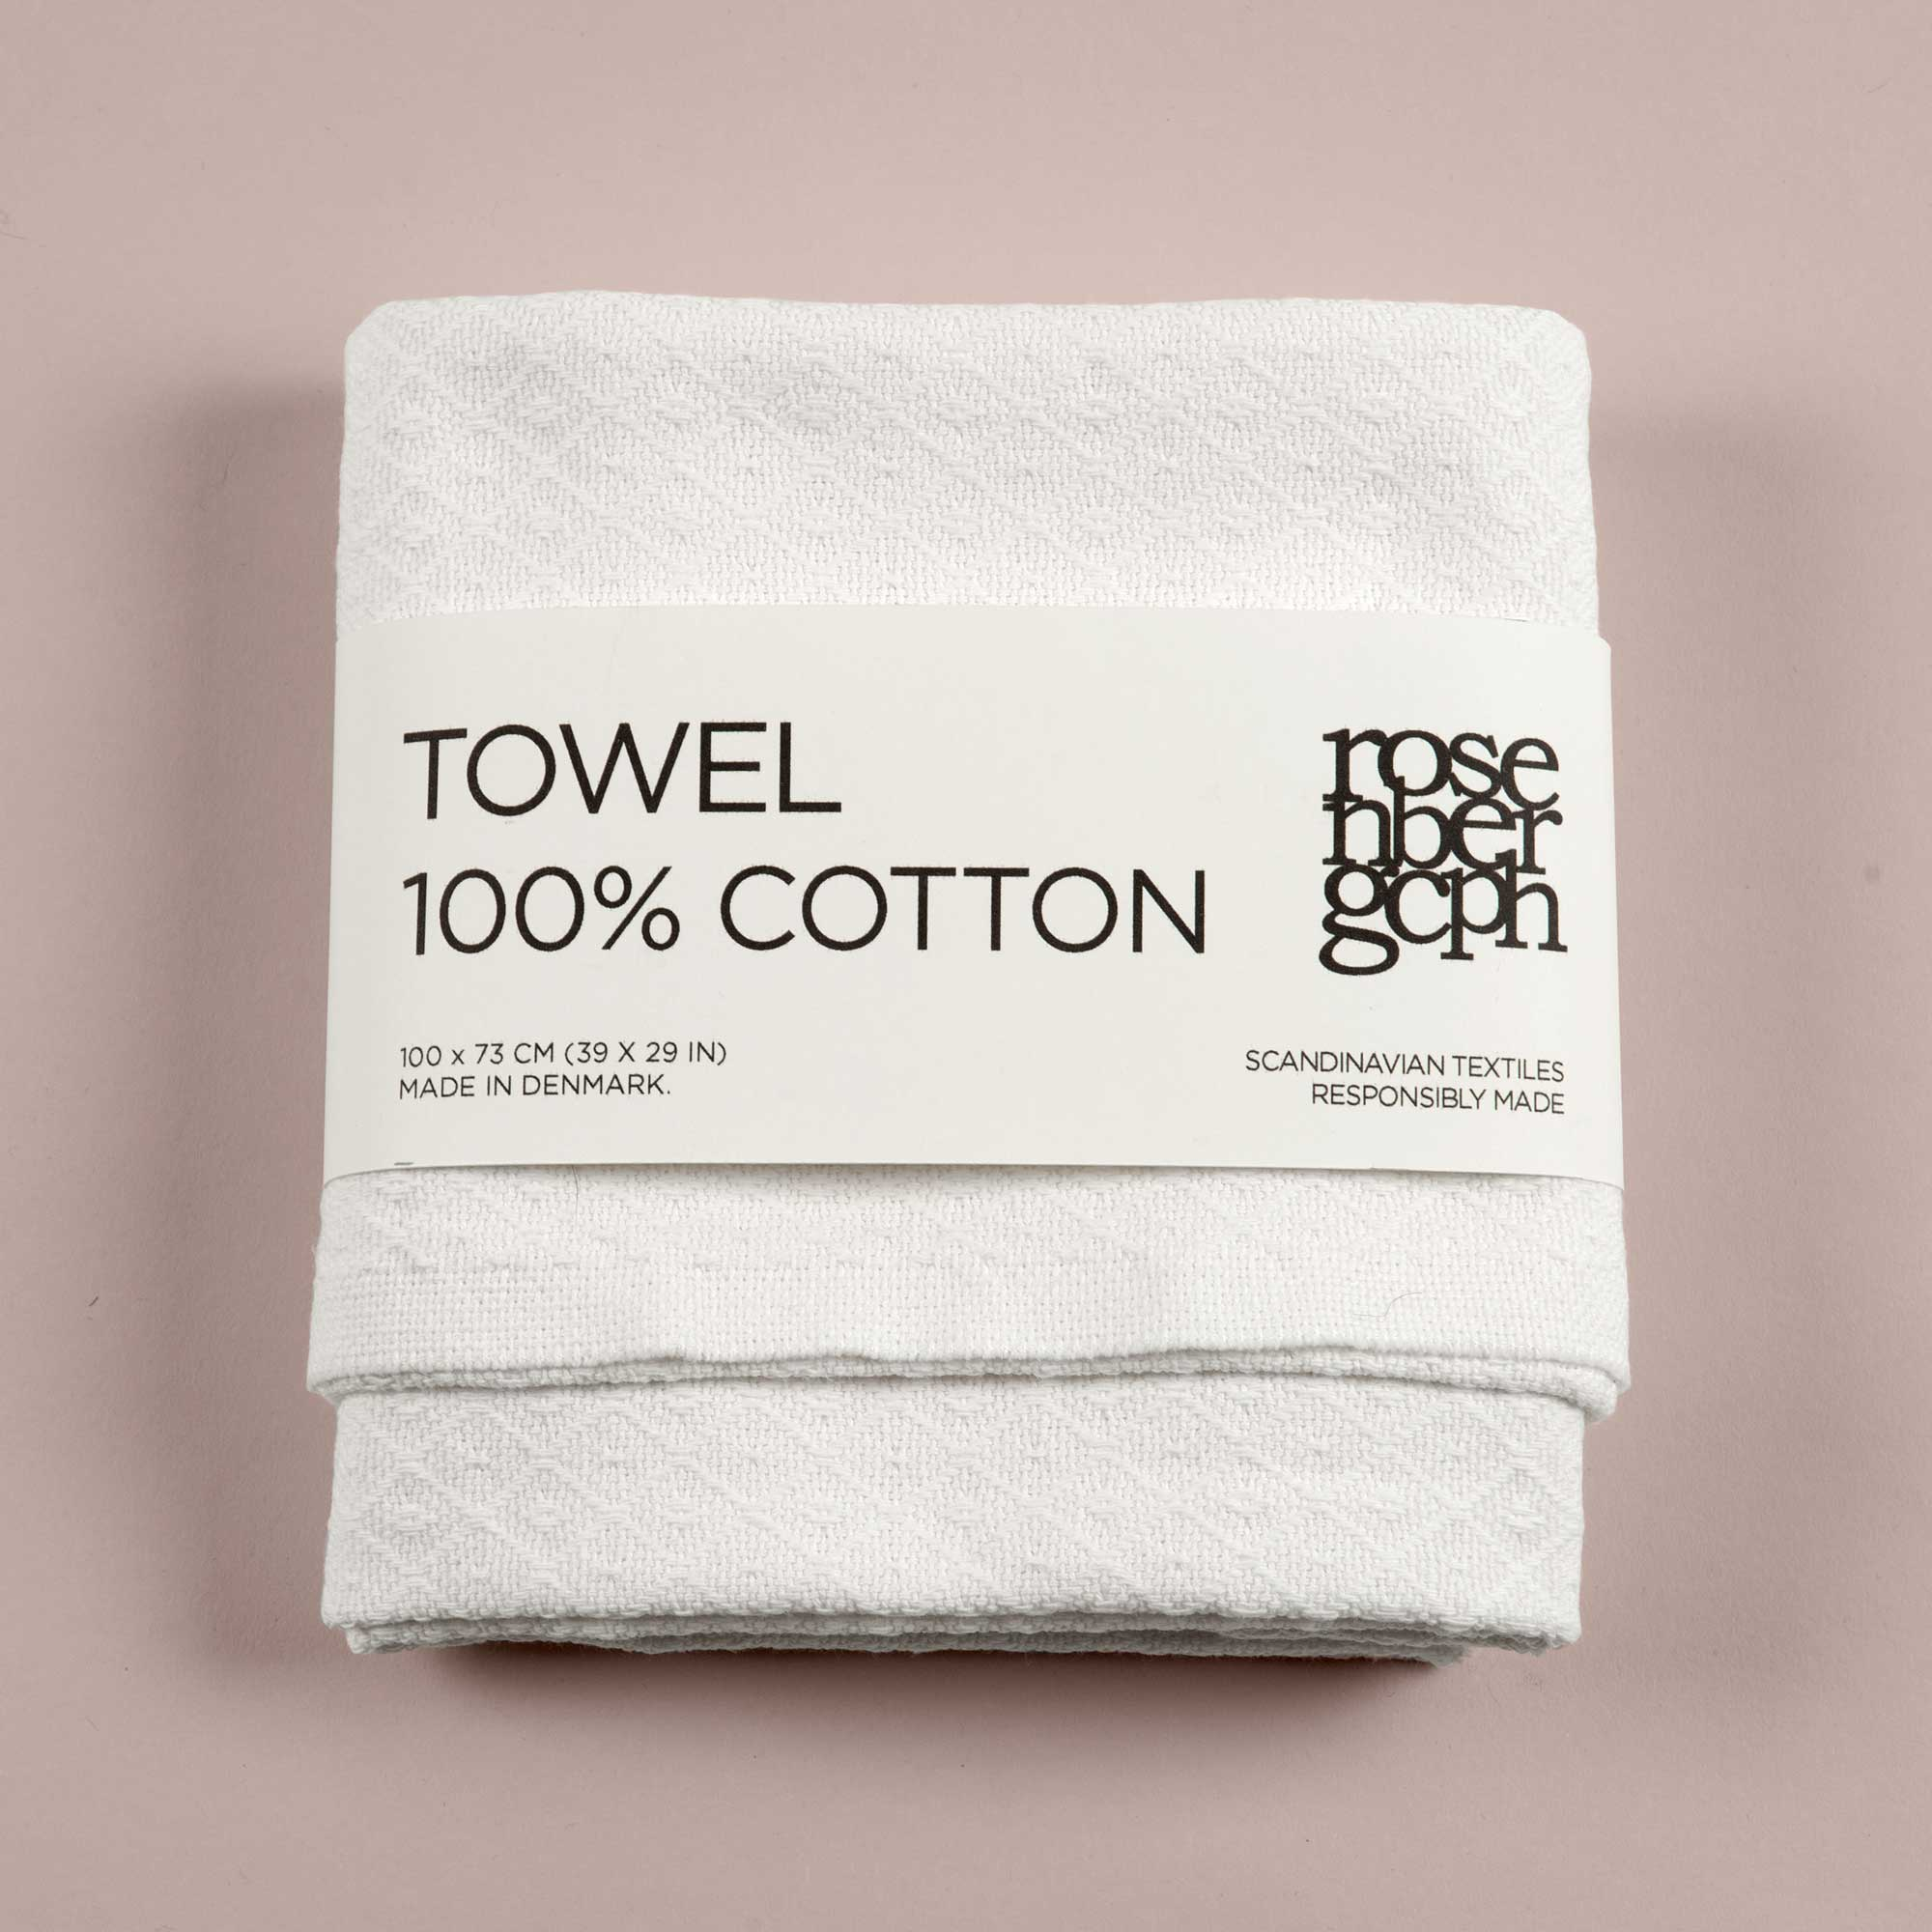 Towel, harlequin weave, 100% cotton, Selected by RosenbergCph